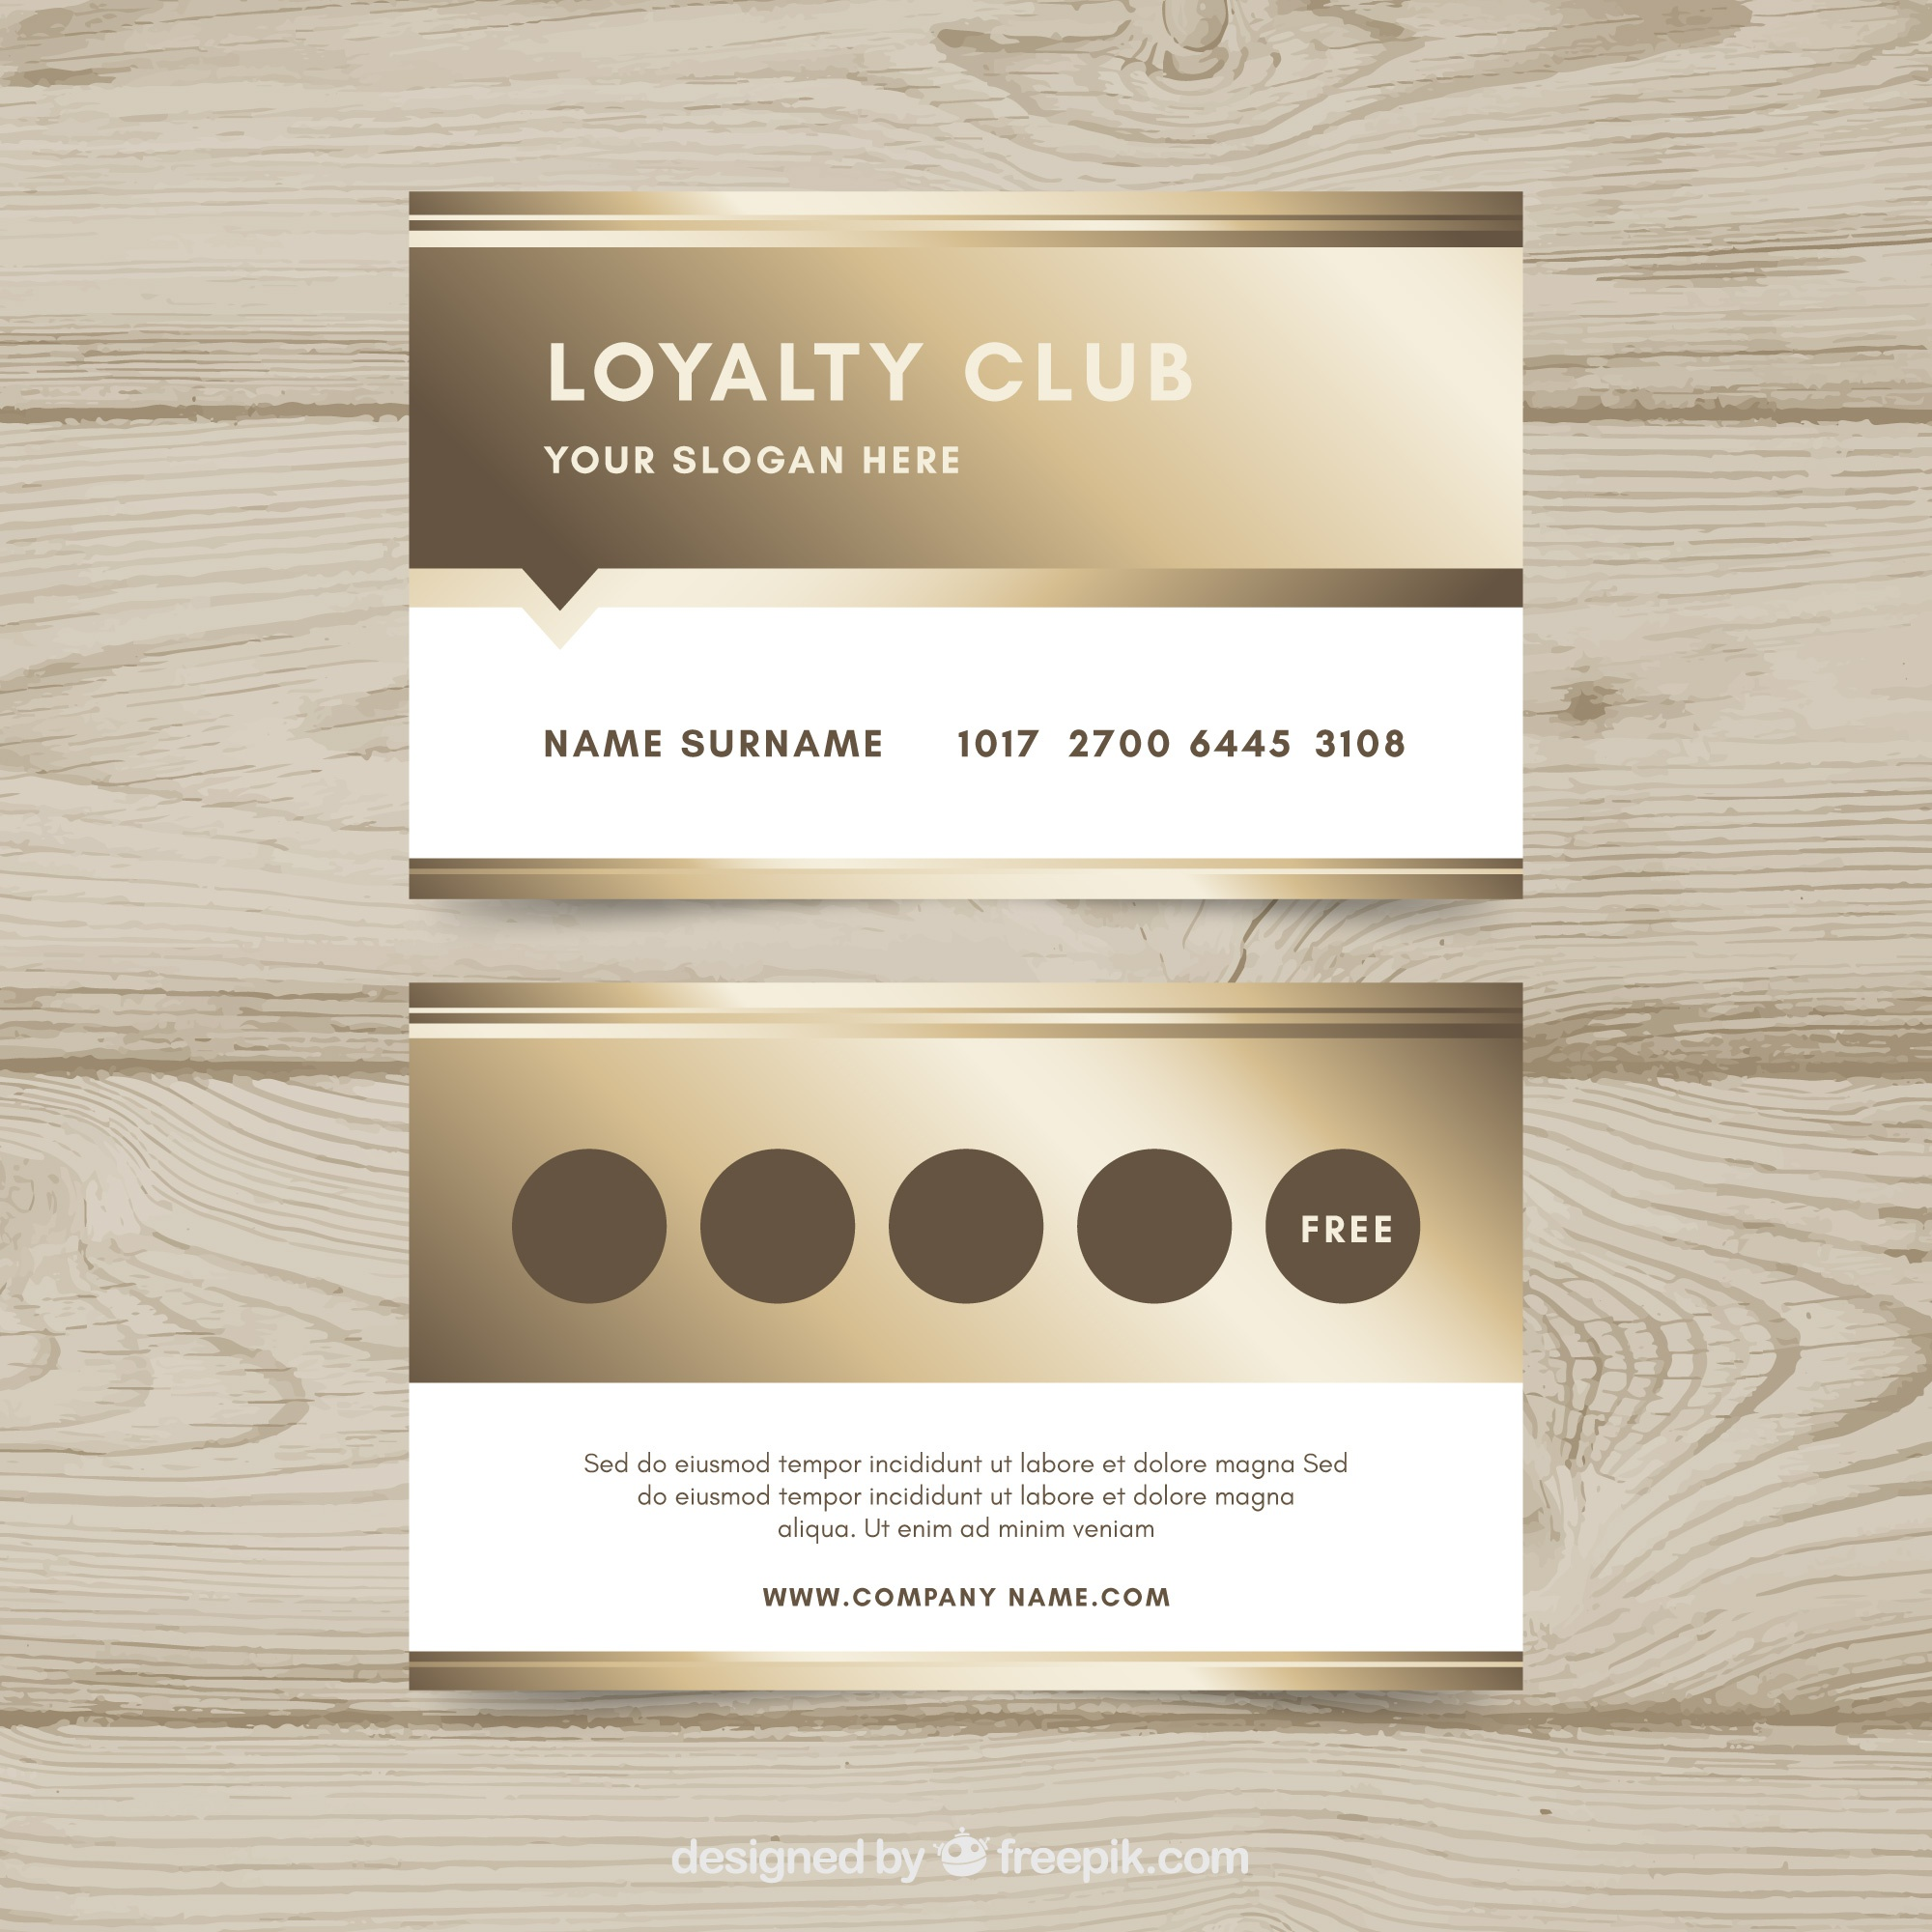 Luxury loyalty card template with golden style